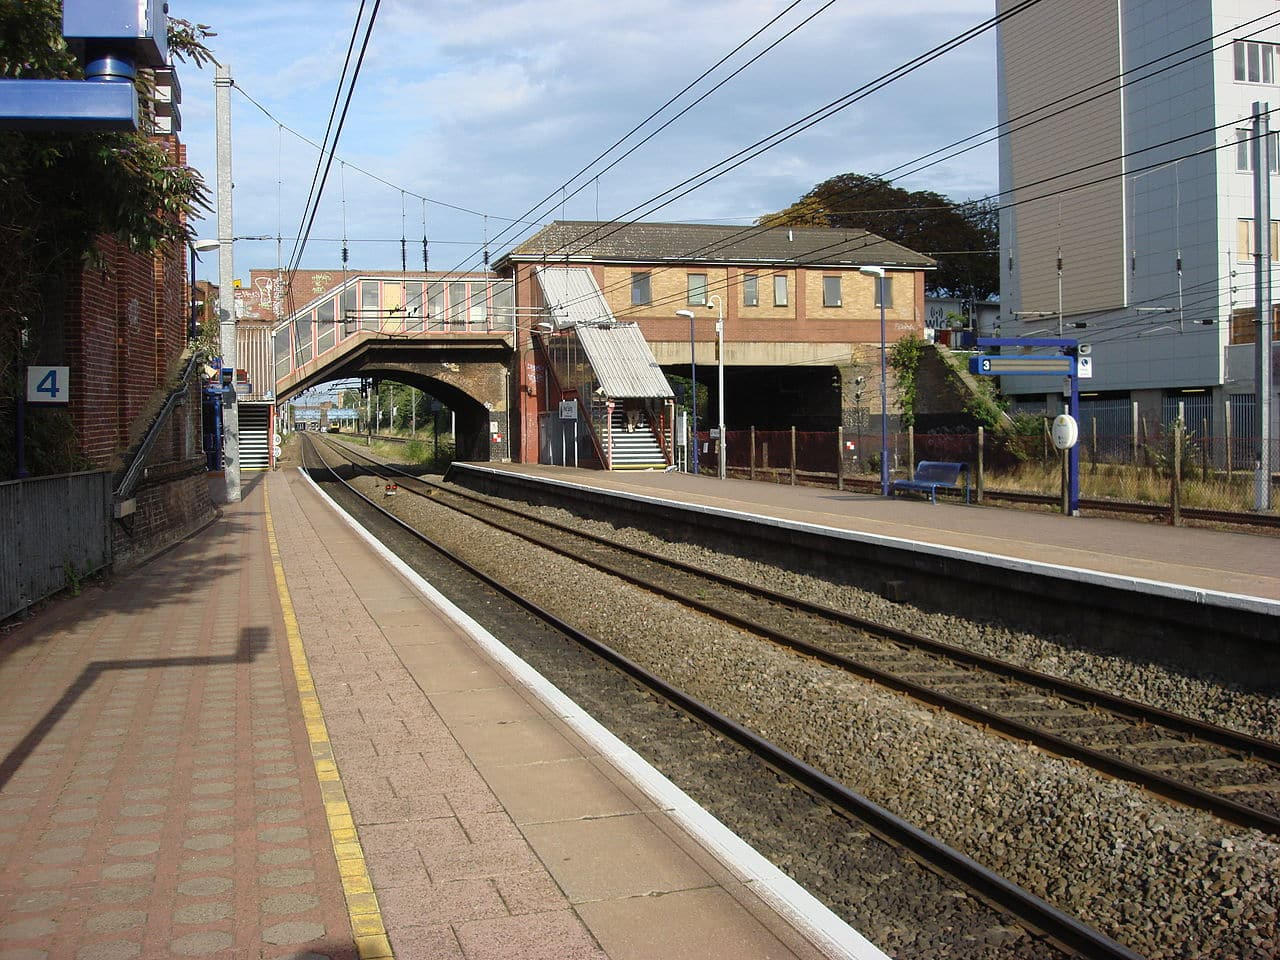 West Ealing railway station